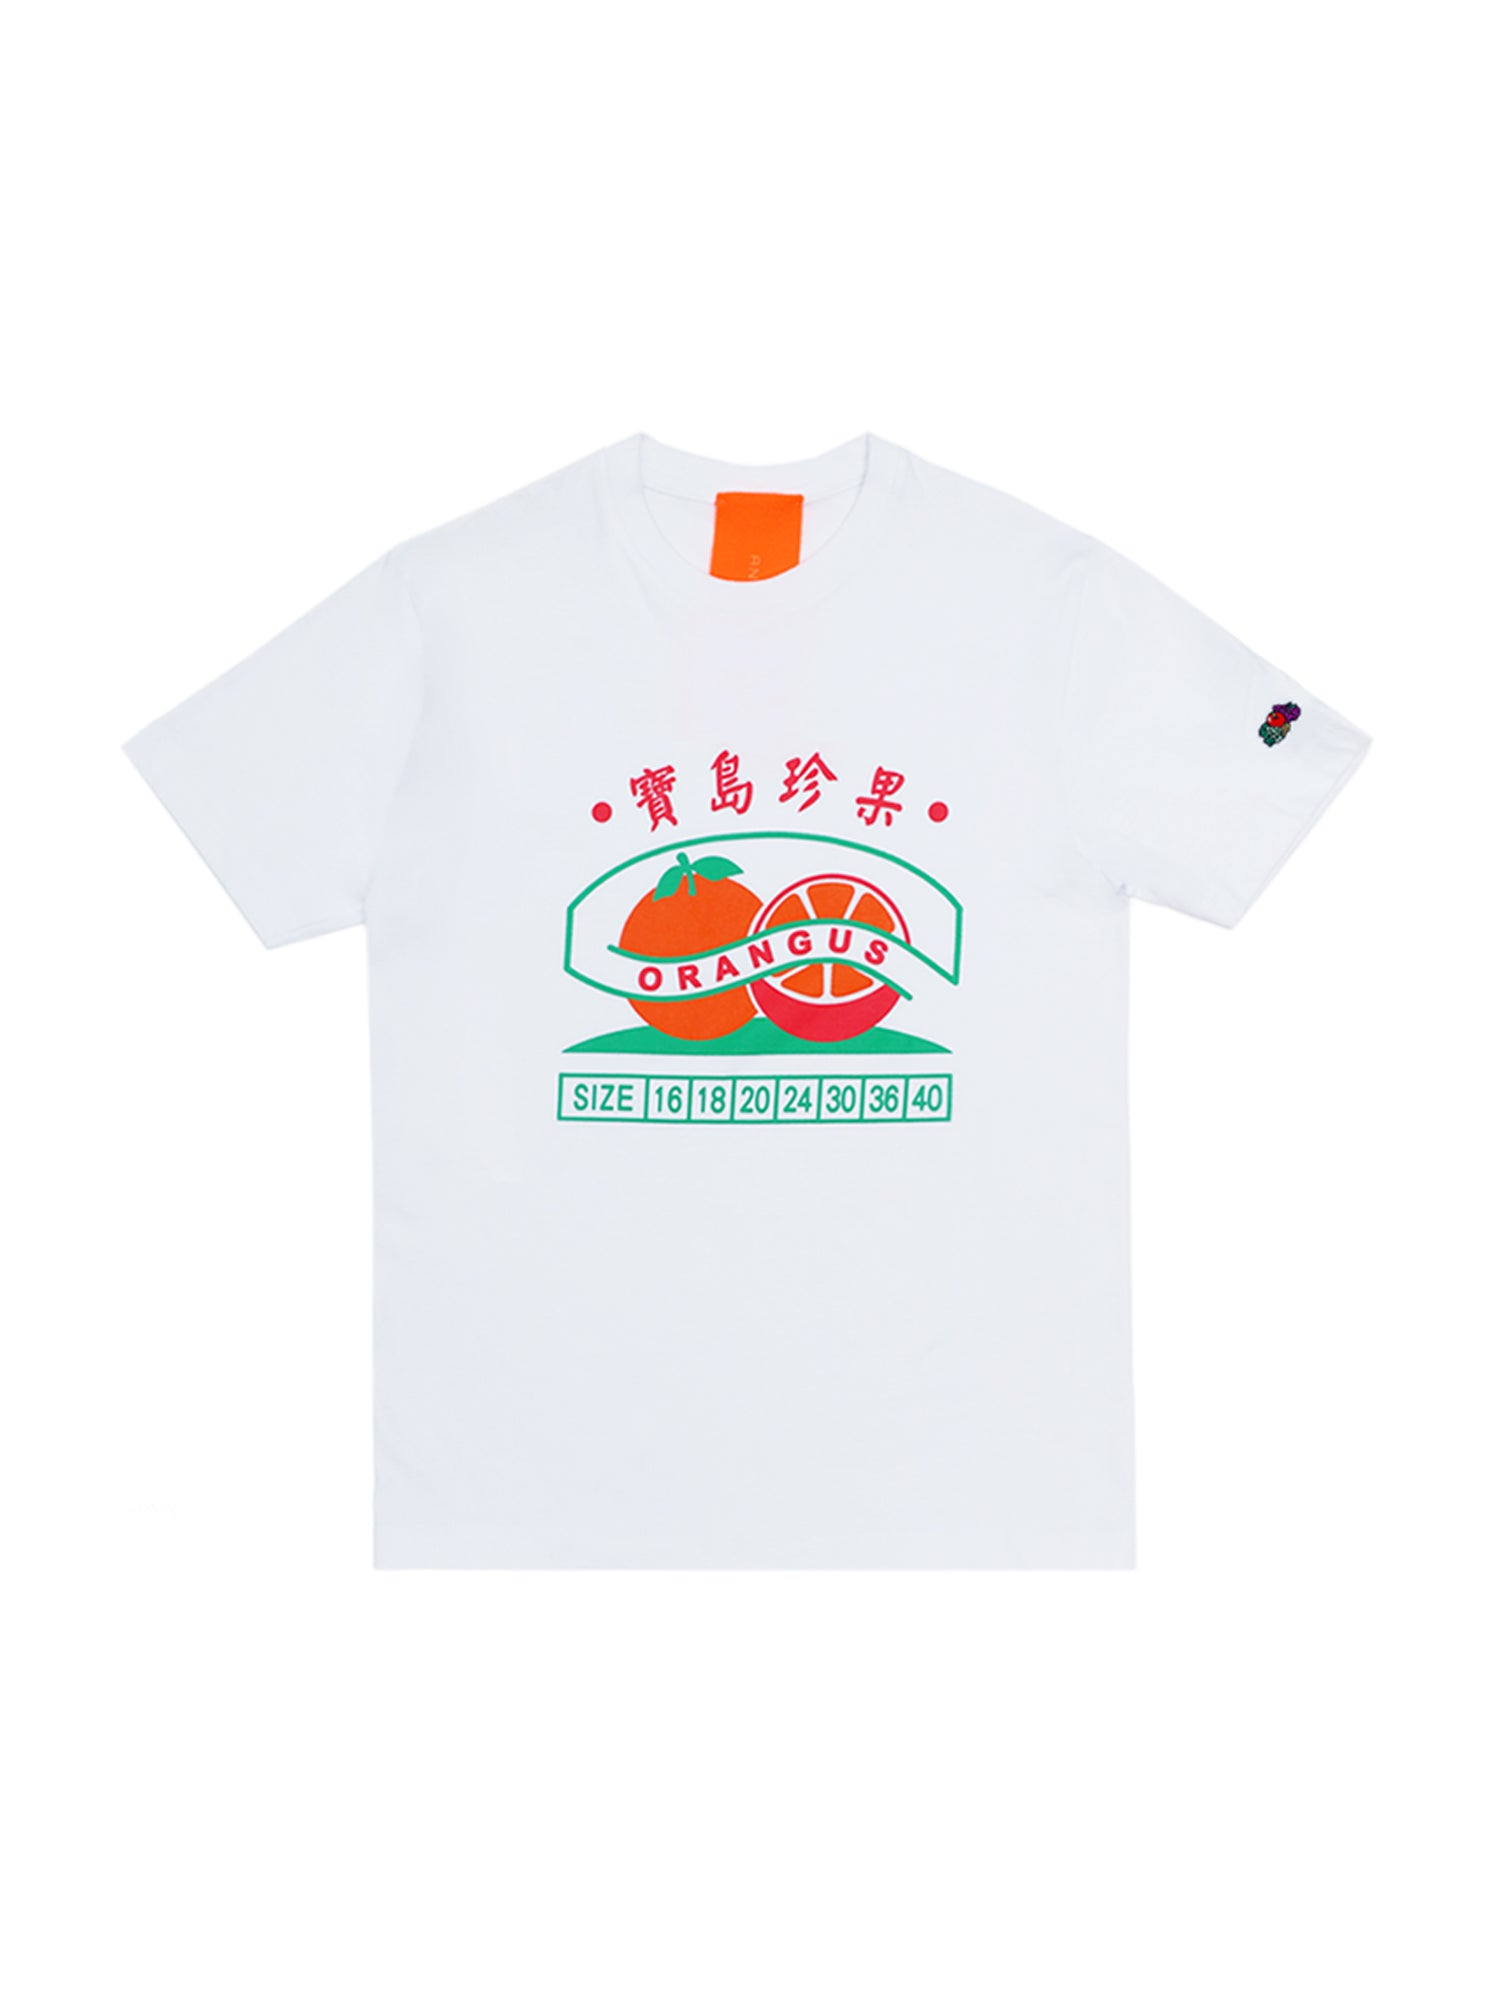 Formosa's Fruits Crew Neck T-Shirt